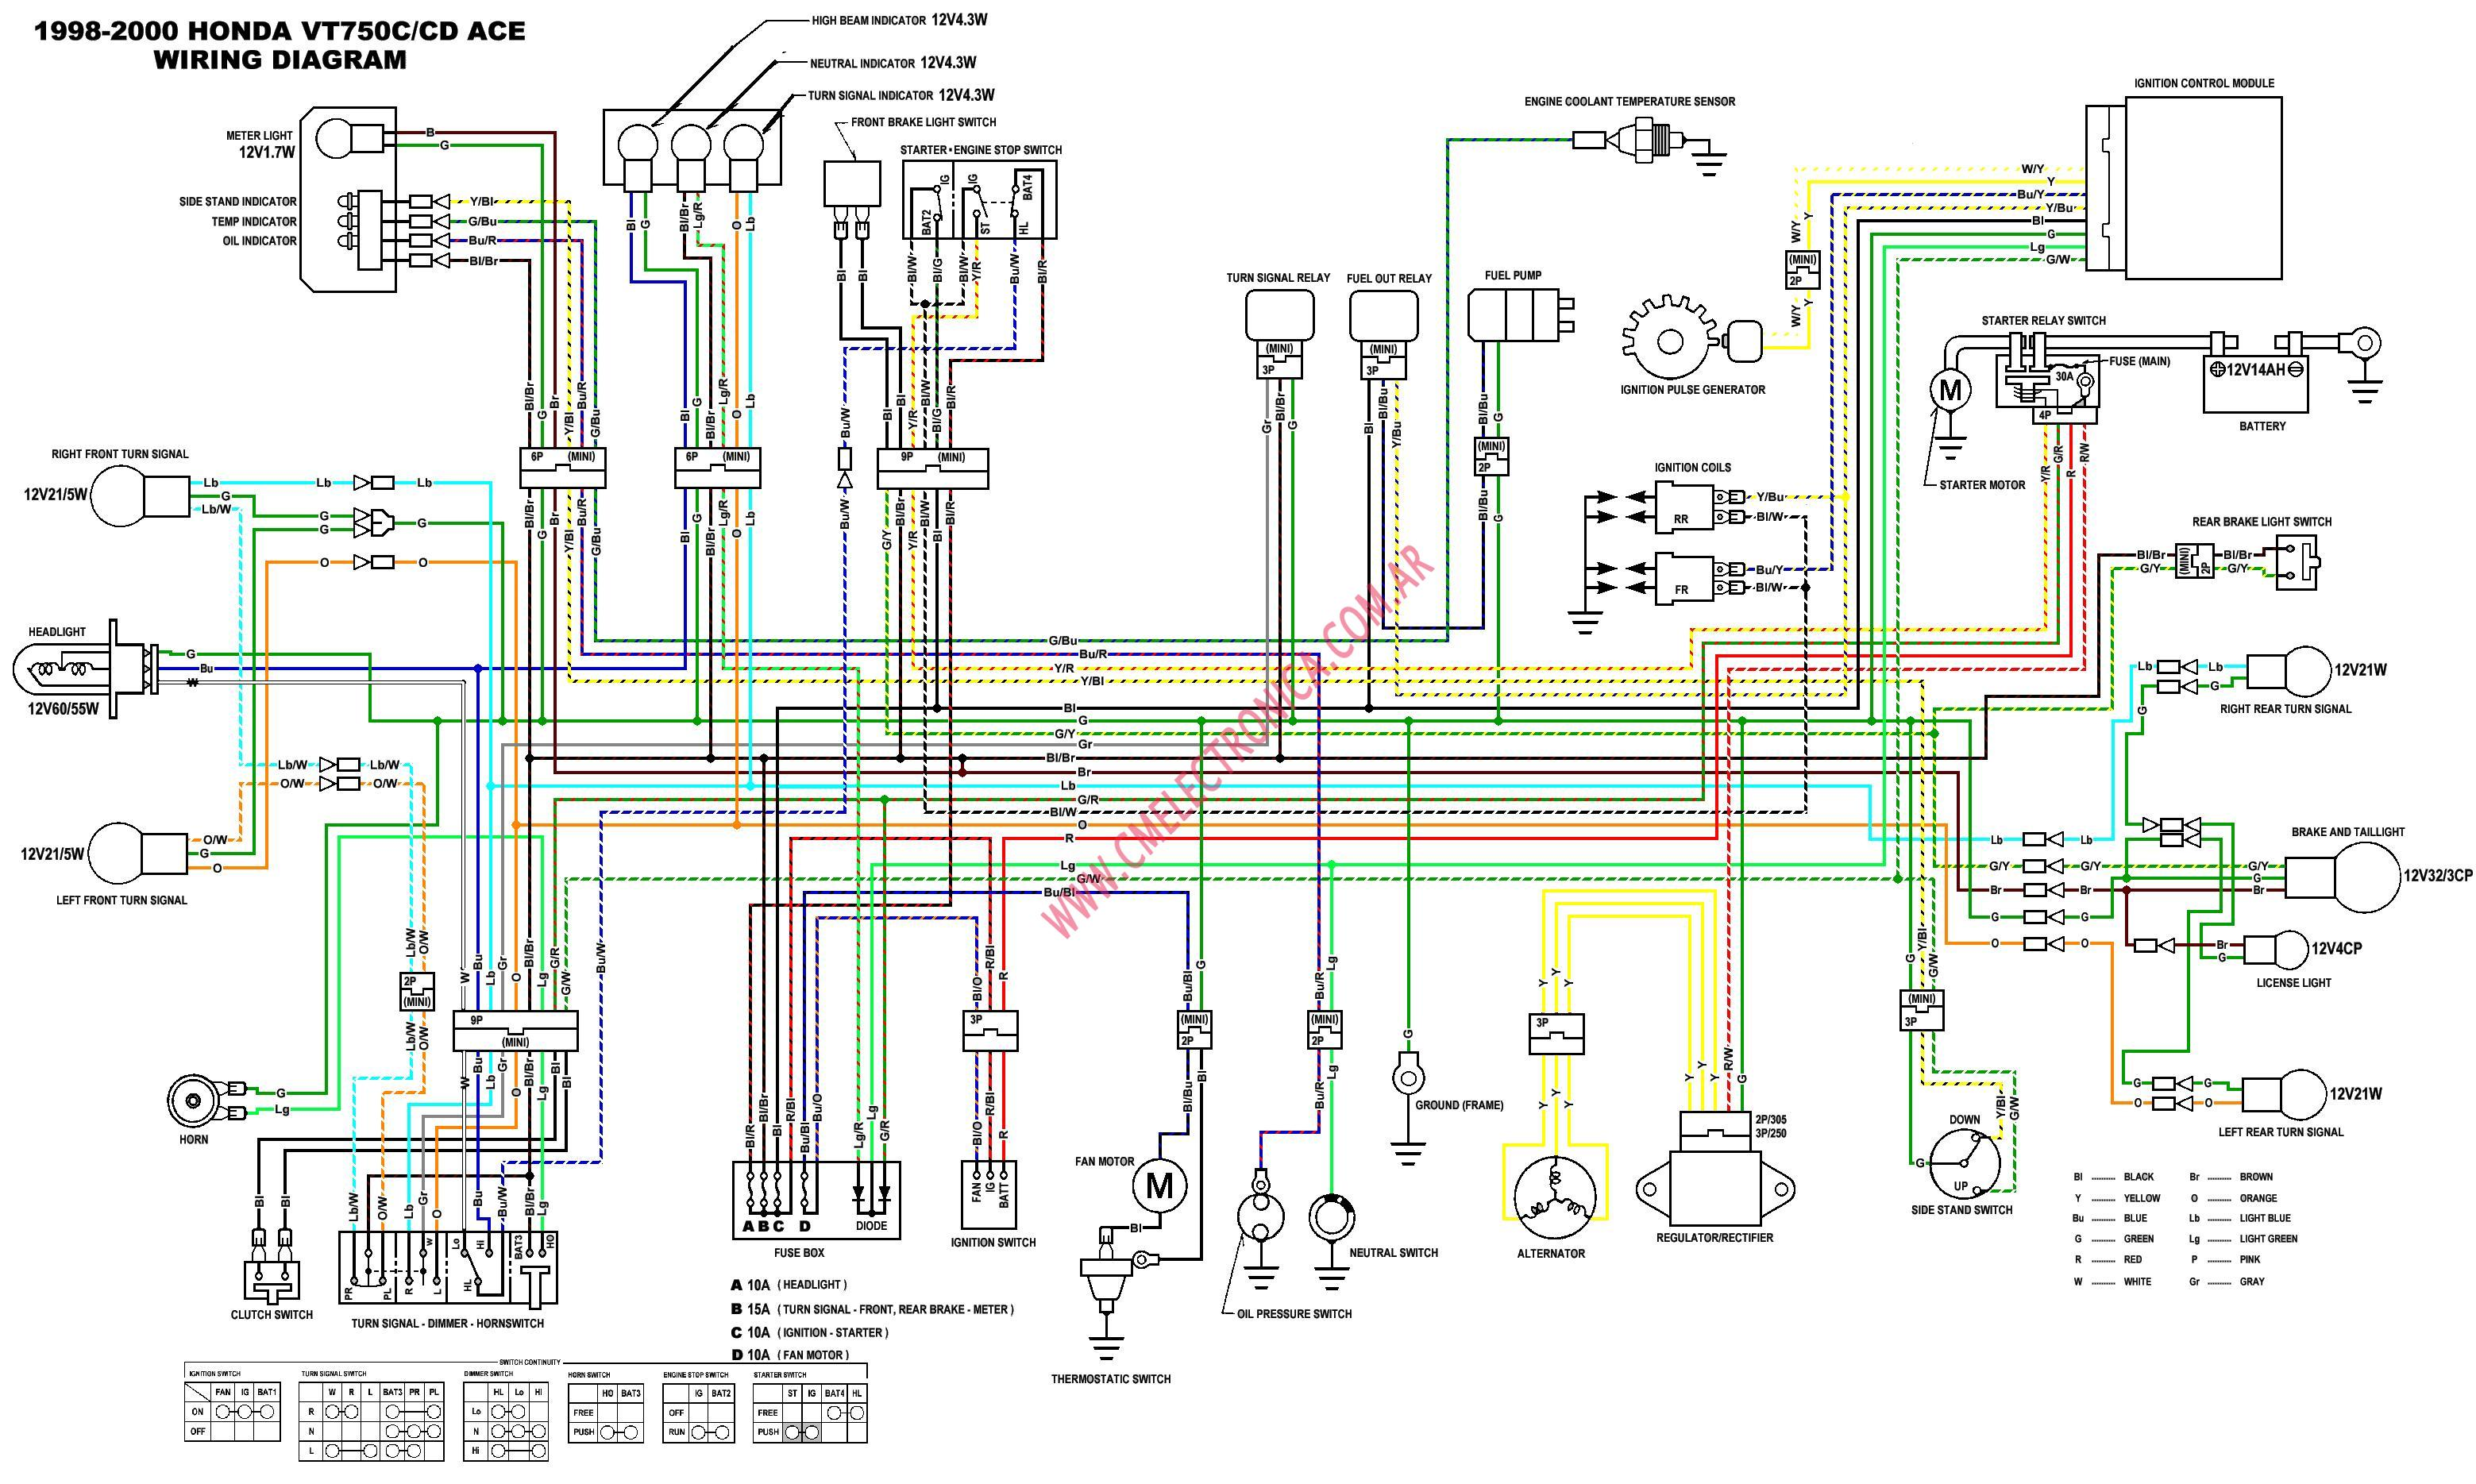 Vt 750 Wiring Diagram - Wiring Diagram 500 Vt Wiring Diagram on honda motorcycle repair diagrams, sincgars radio configurations diagrams, series and parallel circuits diagrams, motor diagrams, pinout diagrams, battery diagrams, engine diagrams, smart car diagrams, gmc fuse box diagrams, lighting diagrams, electrical diagrams, friendship bracelet diagrams, led circuit diagrams, hvac diagrams, troubleshooting diagrams, electronic circuit diagrams, transformer diagrams, switch diagrams, internet of things diagrams,